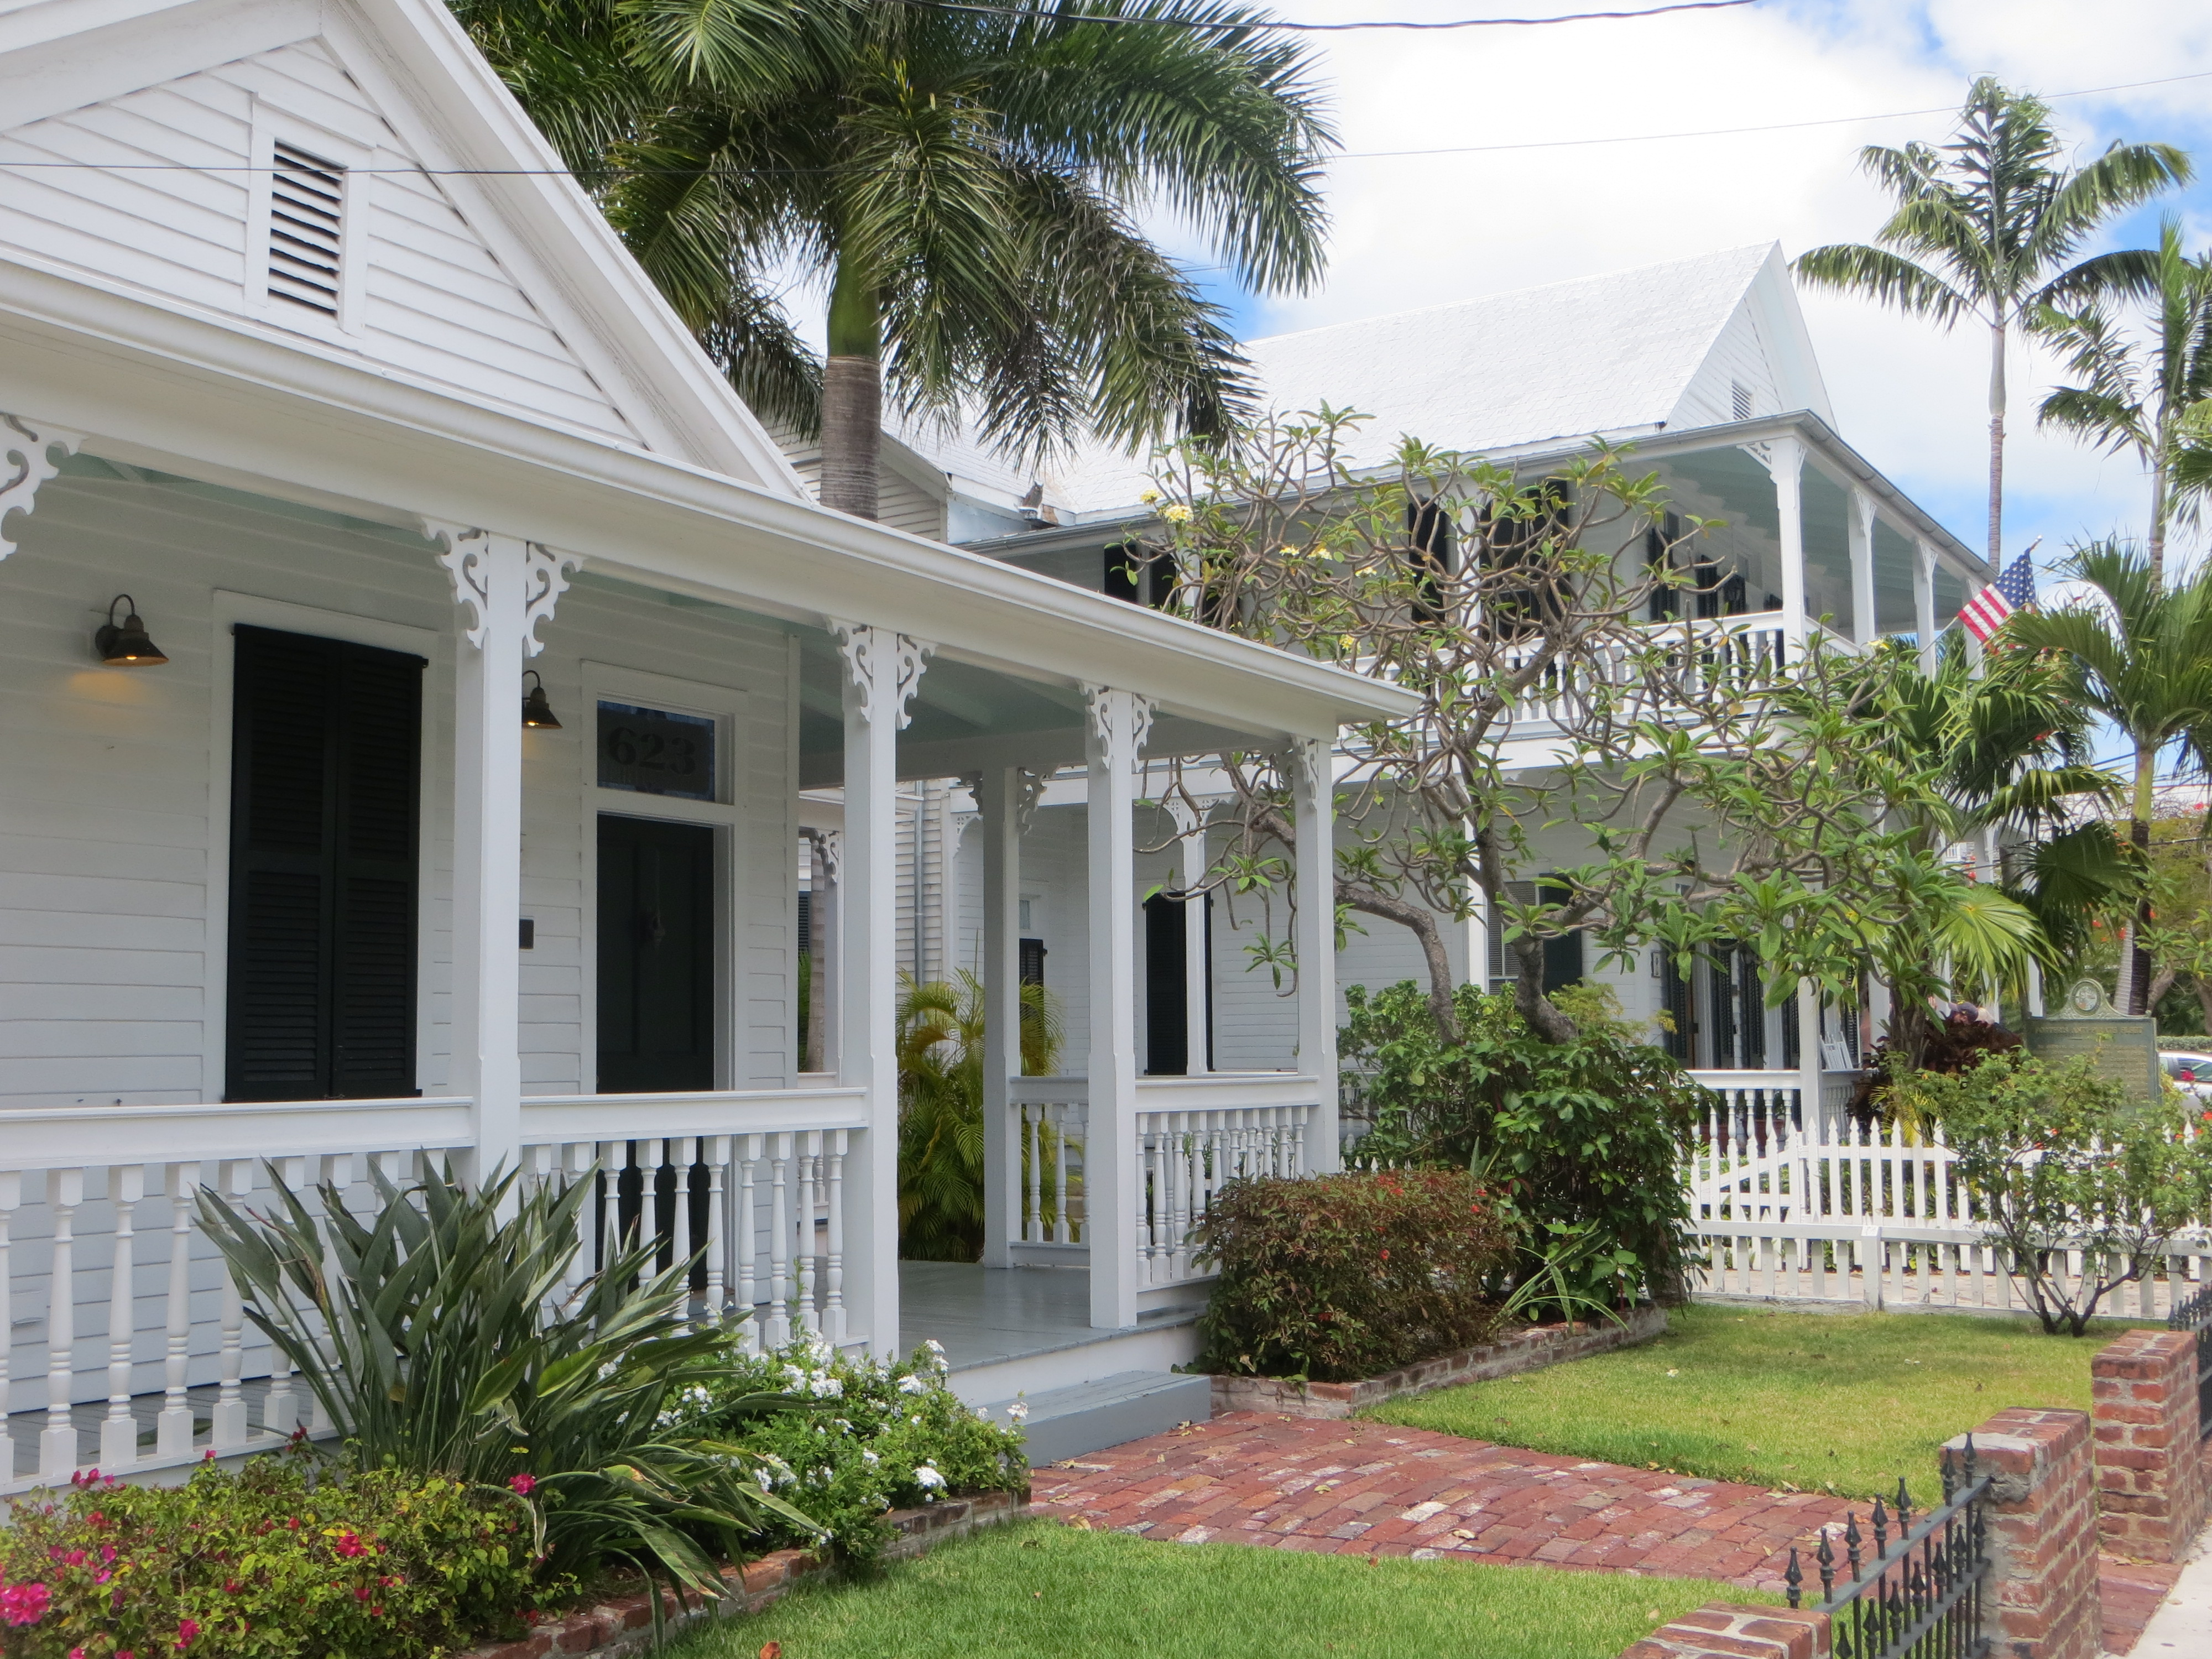 Key west der schl ssel zur karibik mein reiseblog ein for Stile key west